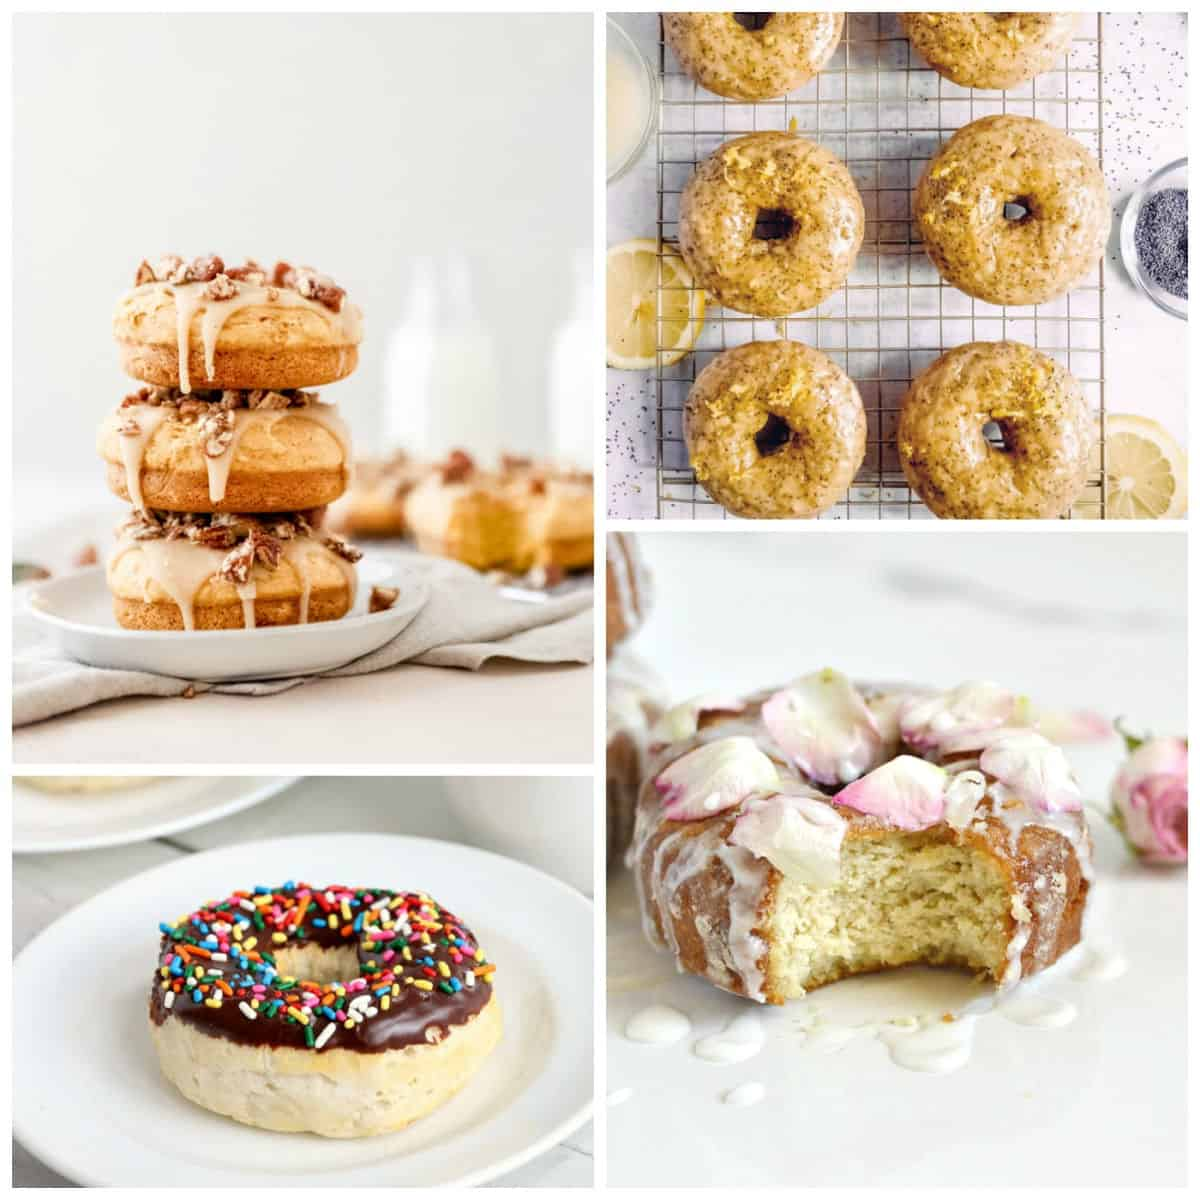 Light colored donuts creating a collage, with transparent or chocolate glazes and toppings